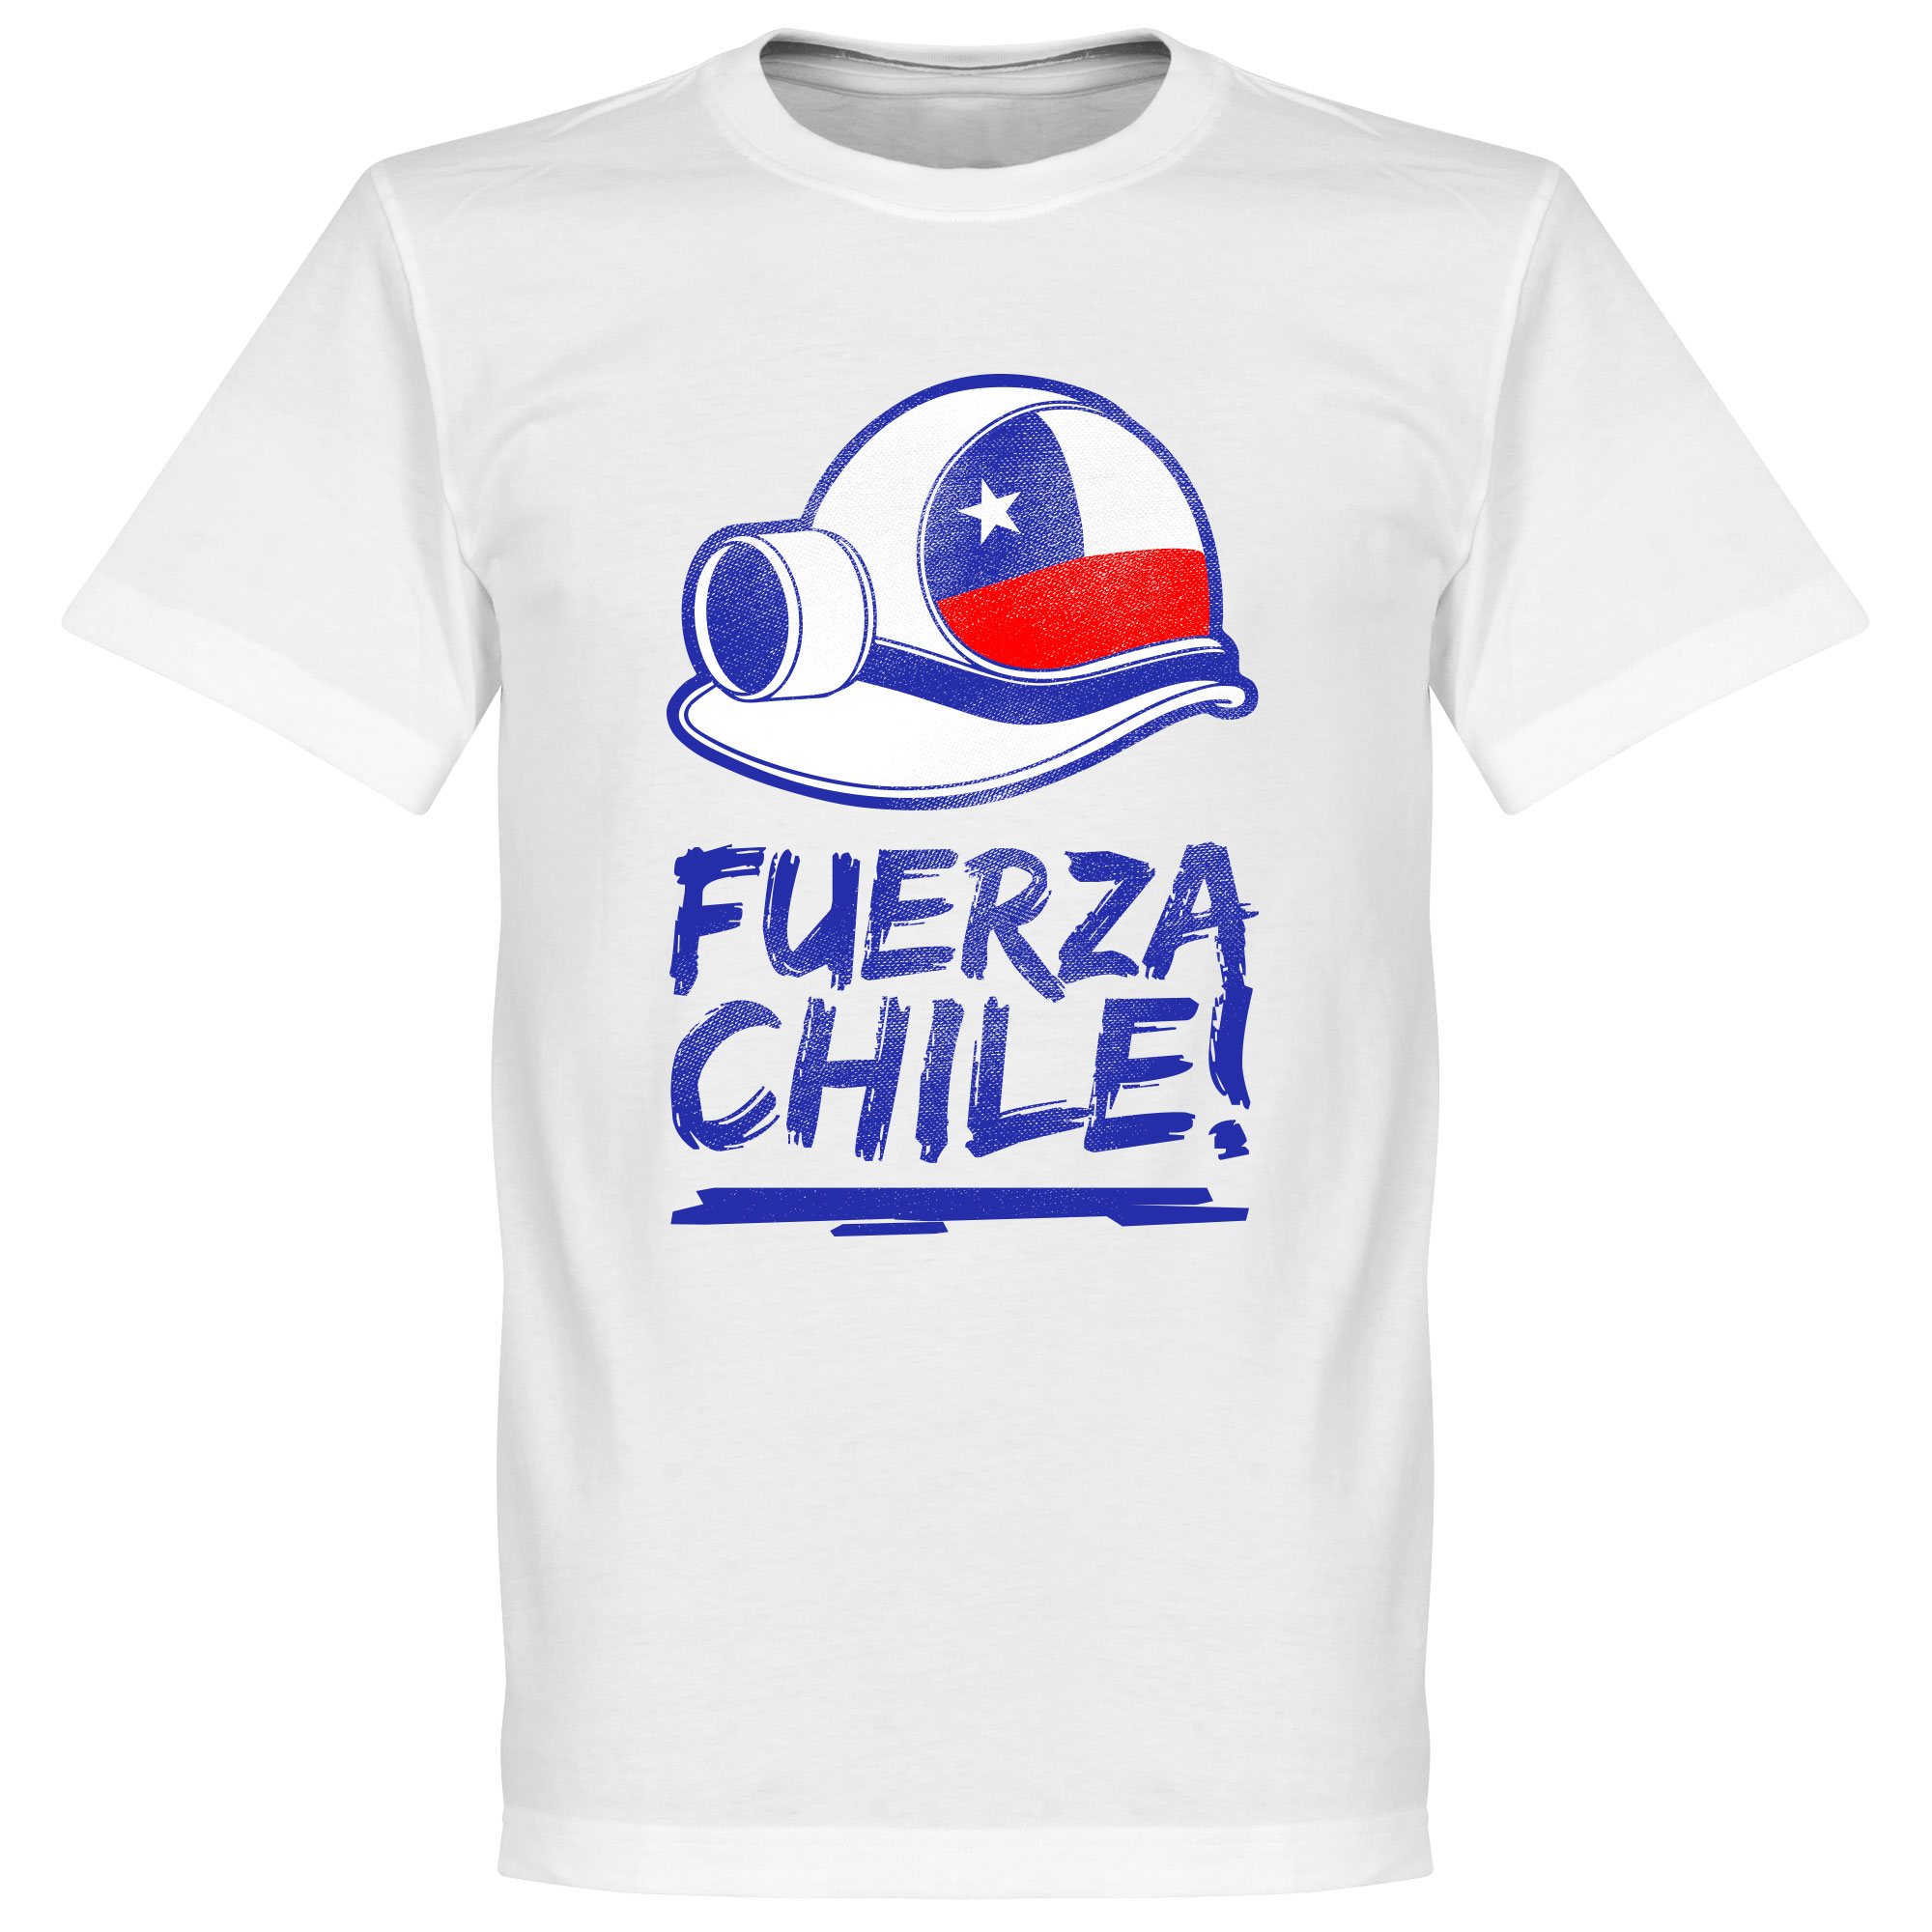 Los 33 Fuerza Chile Tee - White - M